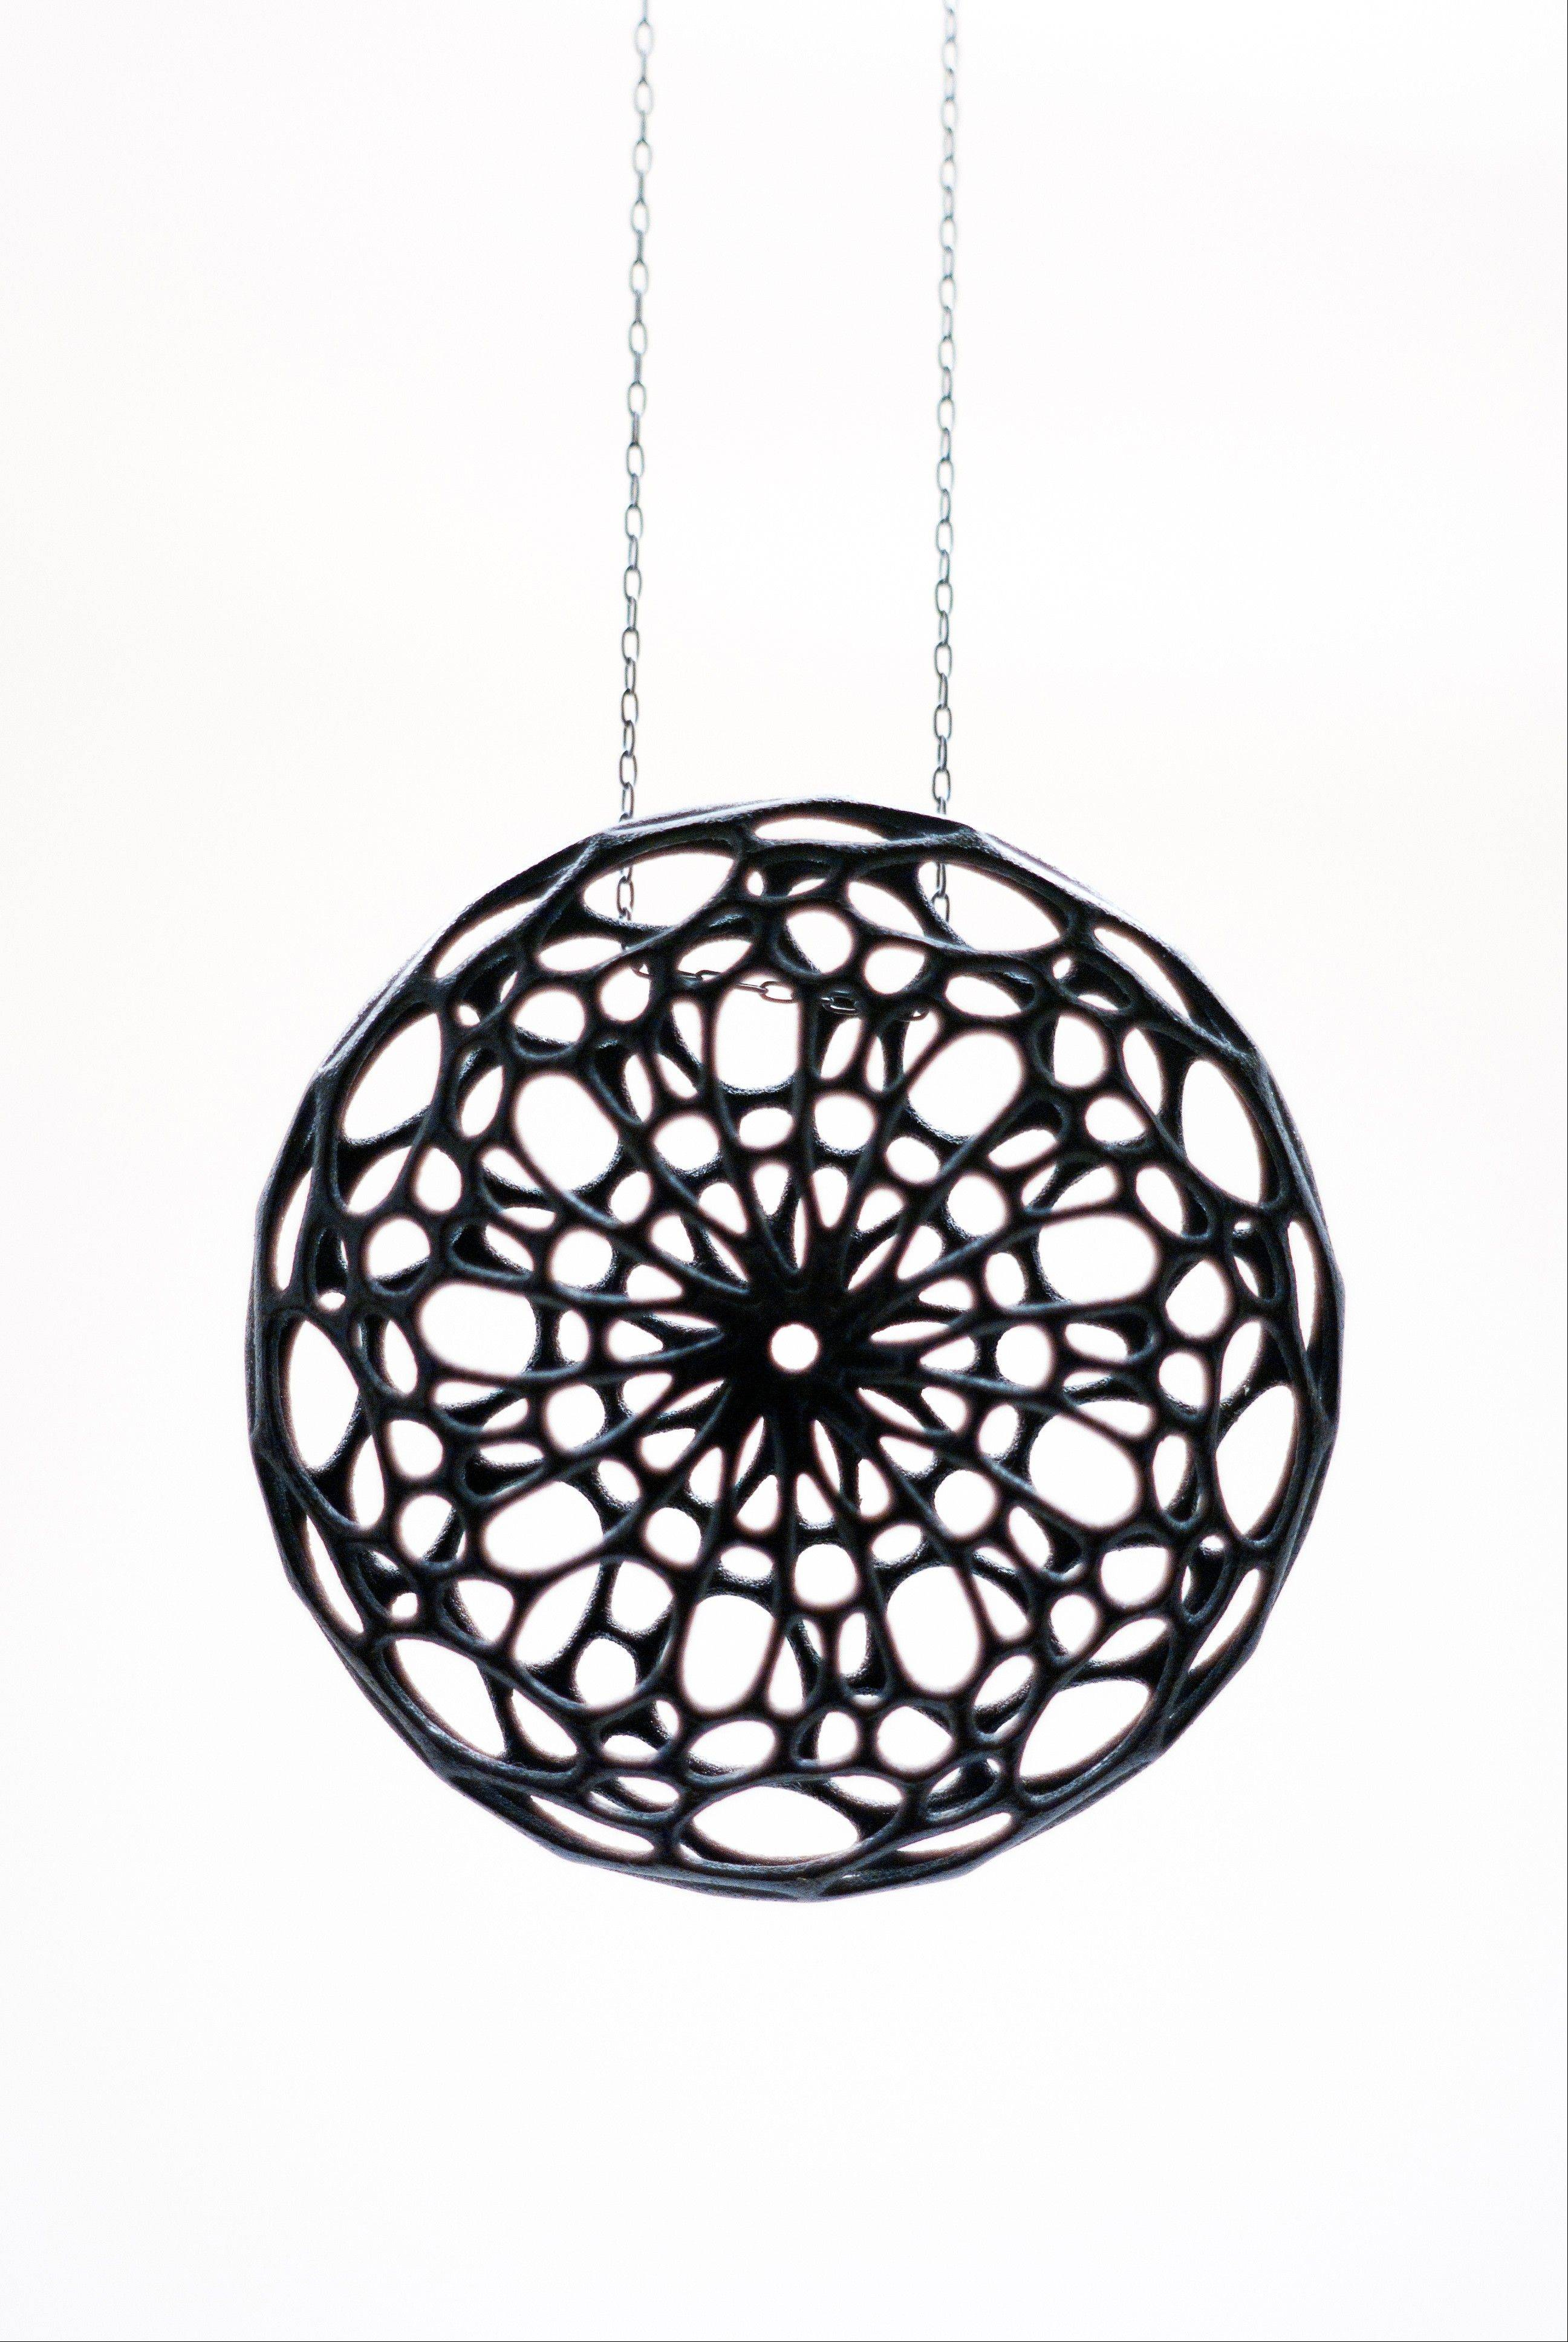 A black nylon plastic Cellular Pendant, created by designer Jessica Rosenkrantz. This and other pieces were inspired by cell-like structures found in nature.